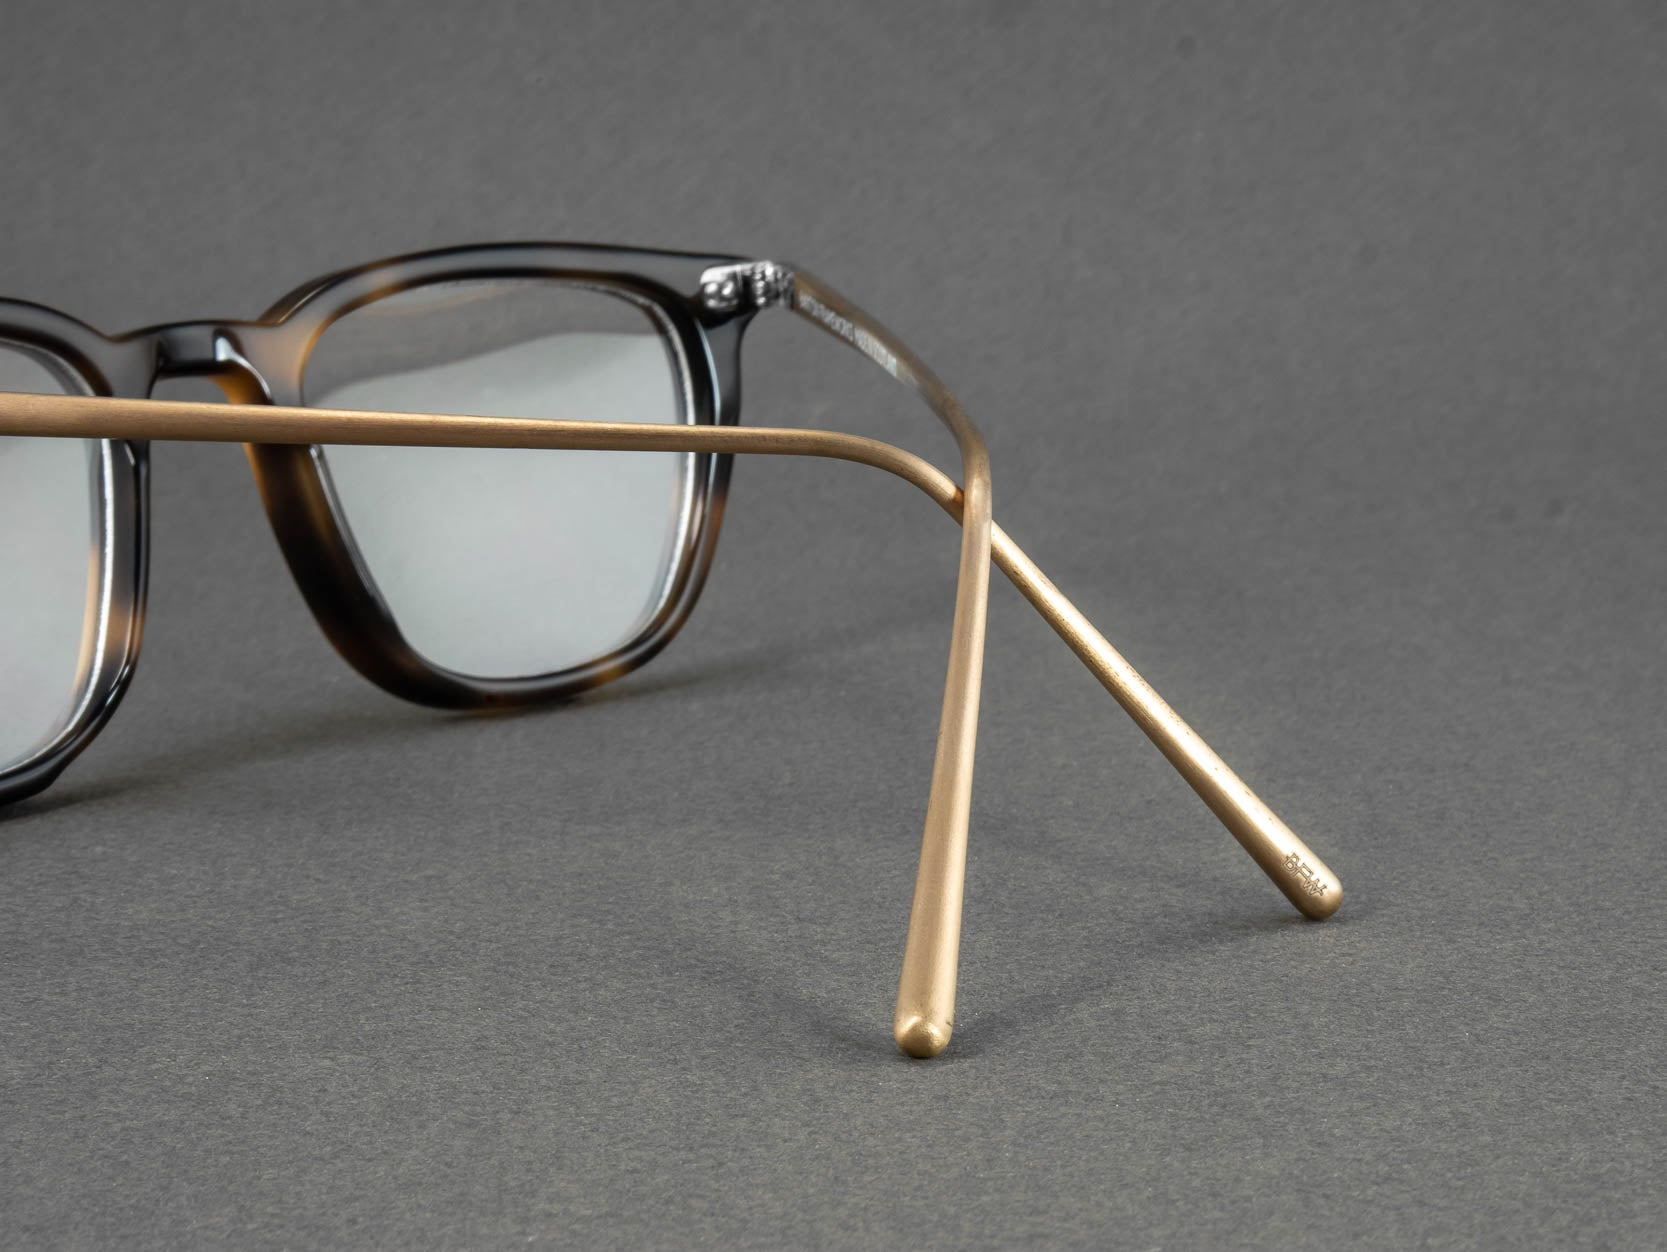 square tortoiseshell glasses temple close up